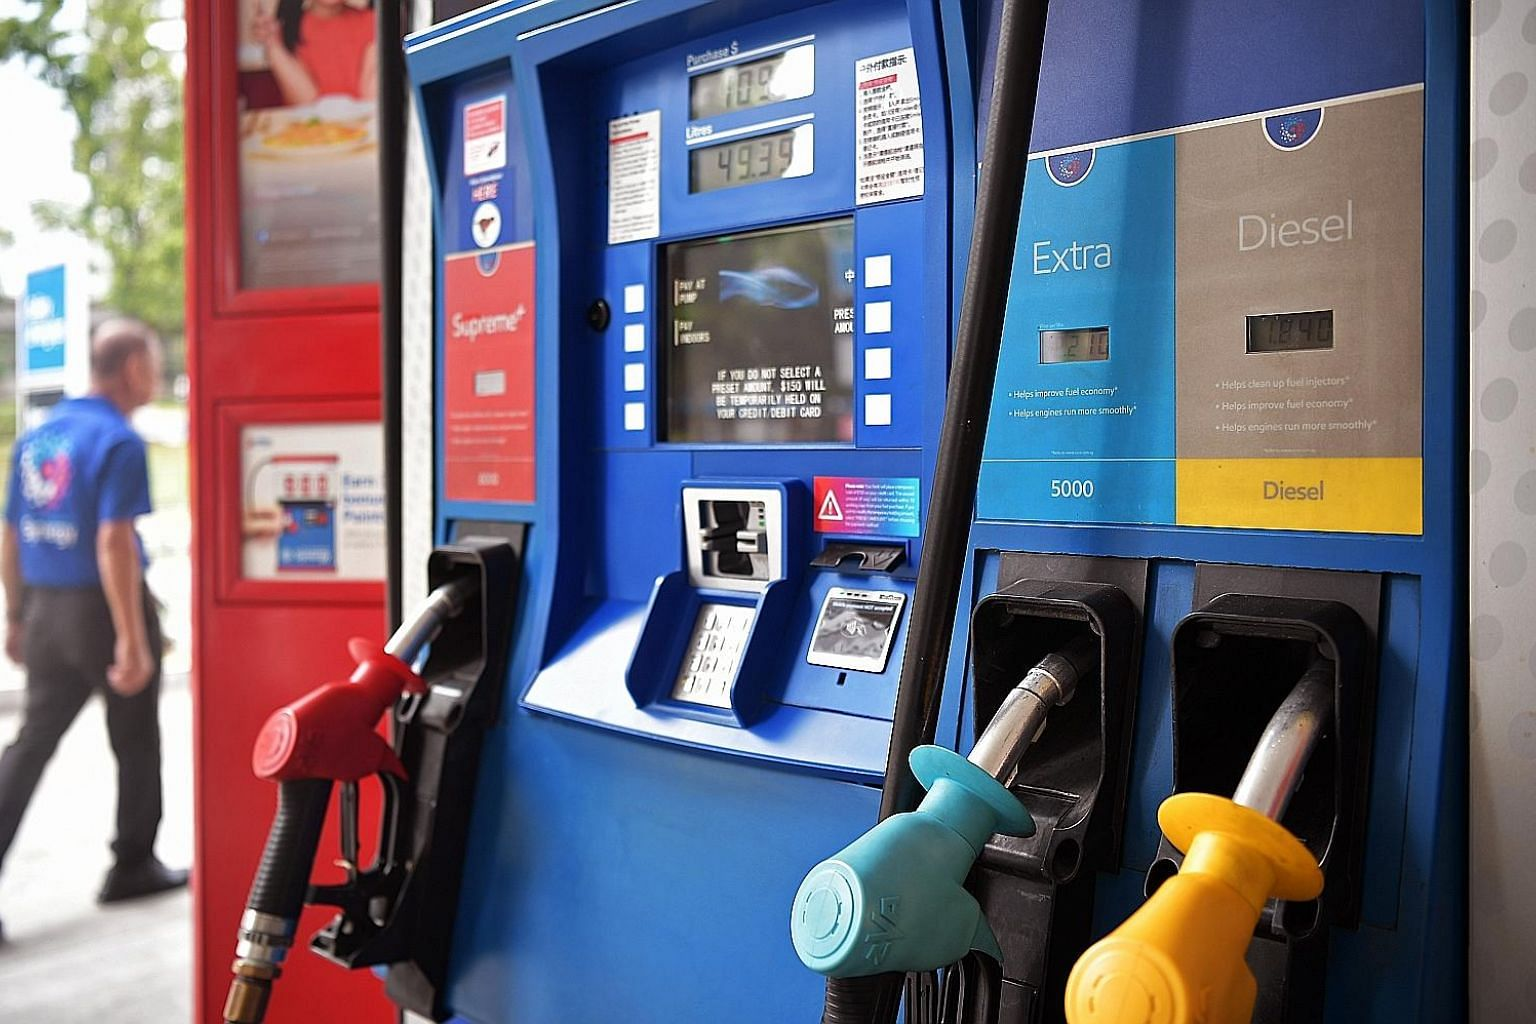 Finance Minister Heng Swee Keat, in addressing concerns over potentially higher business costs with the increase in diesel tax, stressed that the long-term impact of excessive diesel use on people's health is significant. The diesel excise duty is on